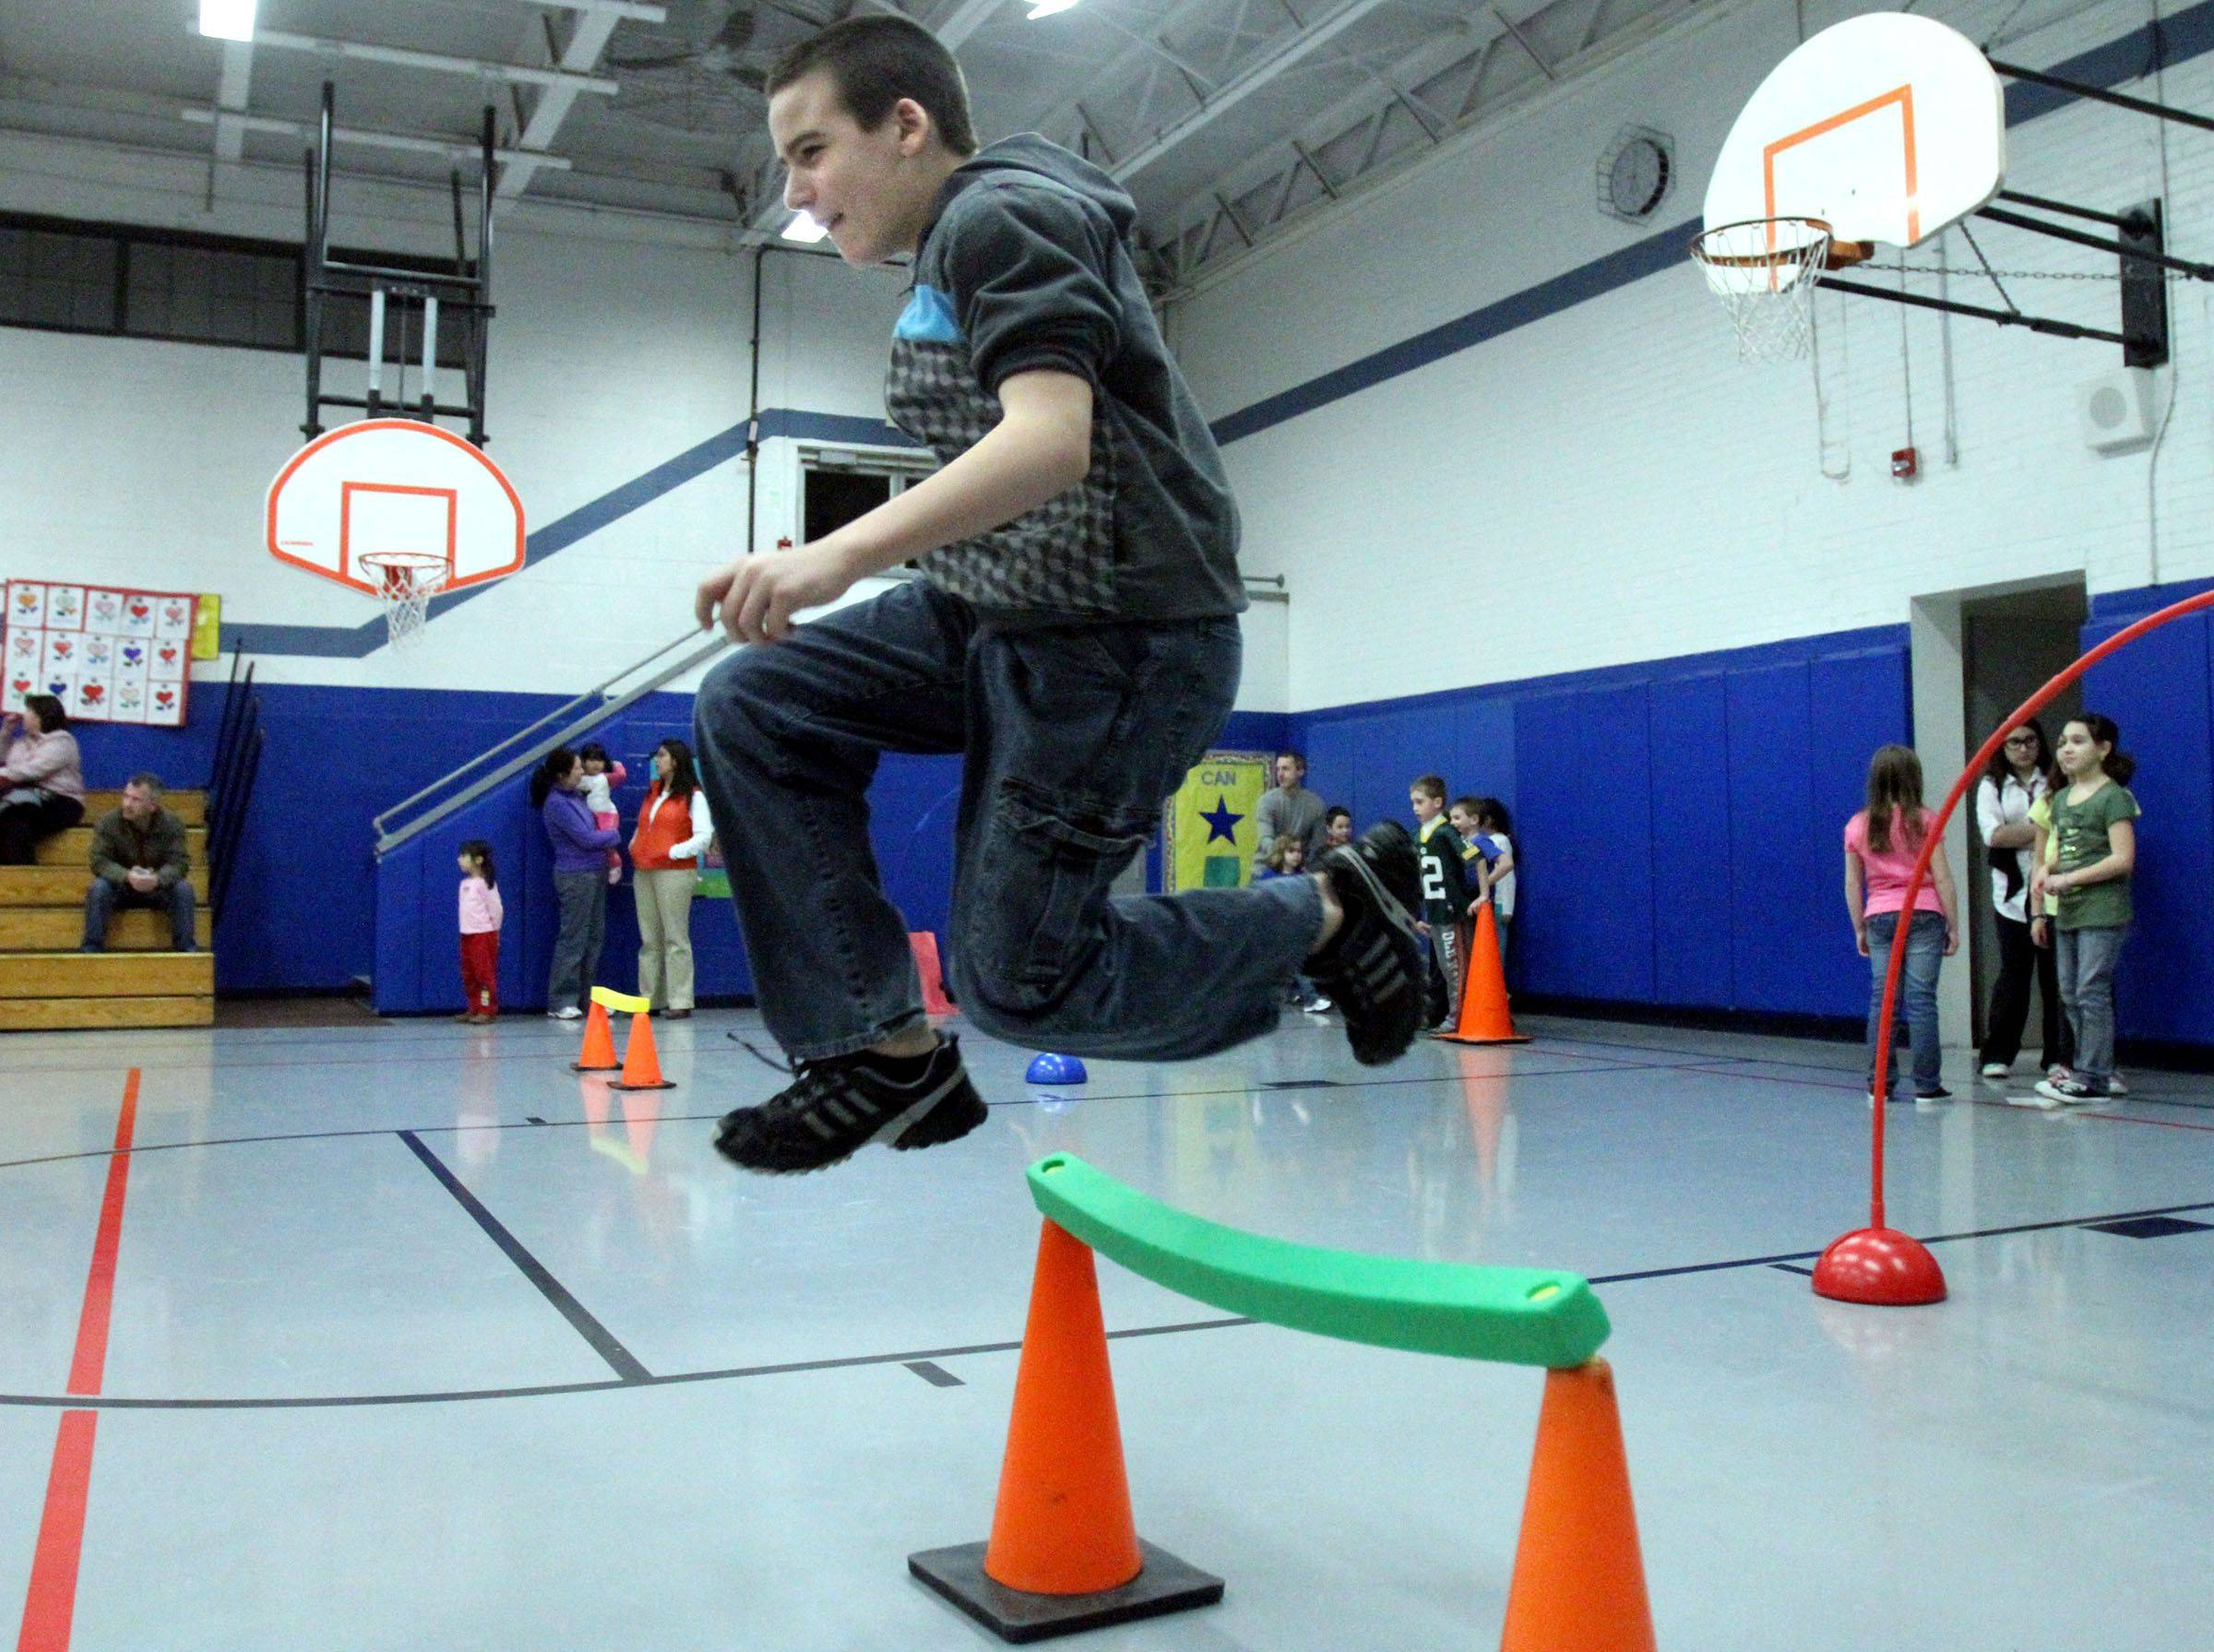 Michael Jones, 11, leaps over a foam bar on cones within an exercise course in the gym at Avon School during Grayslake District 46 wellness night.